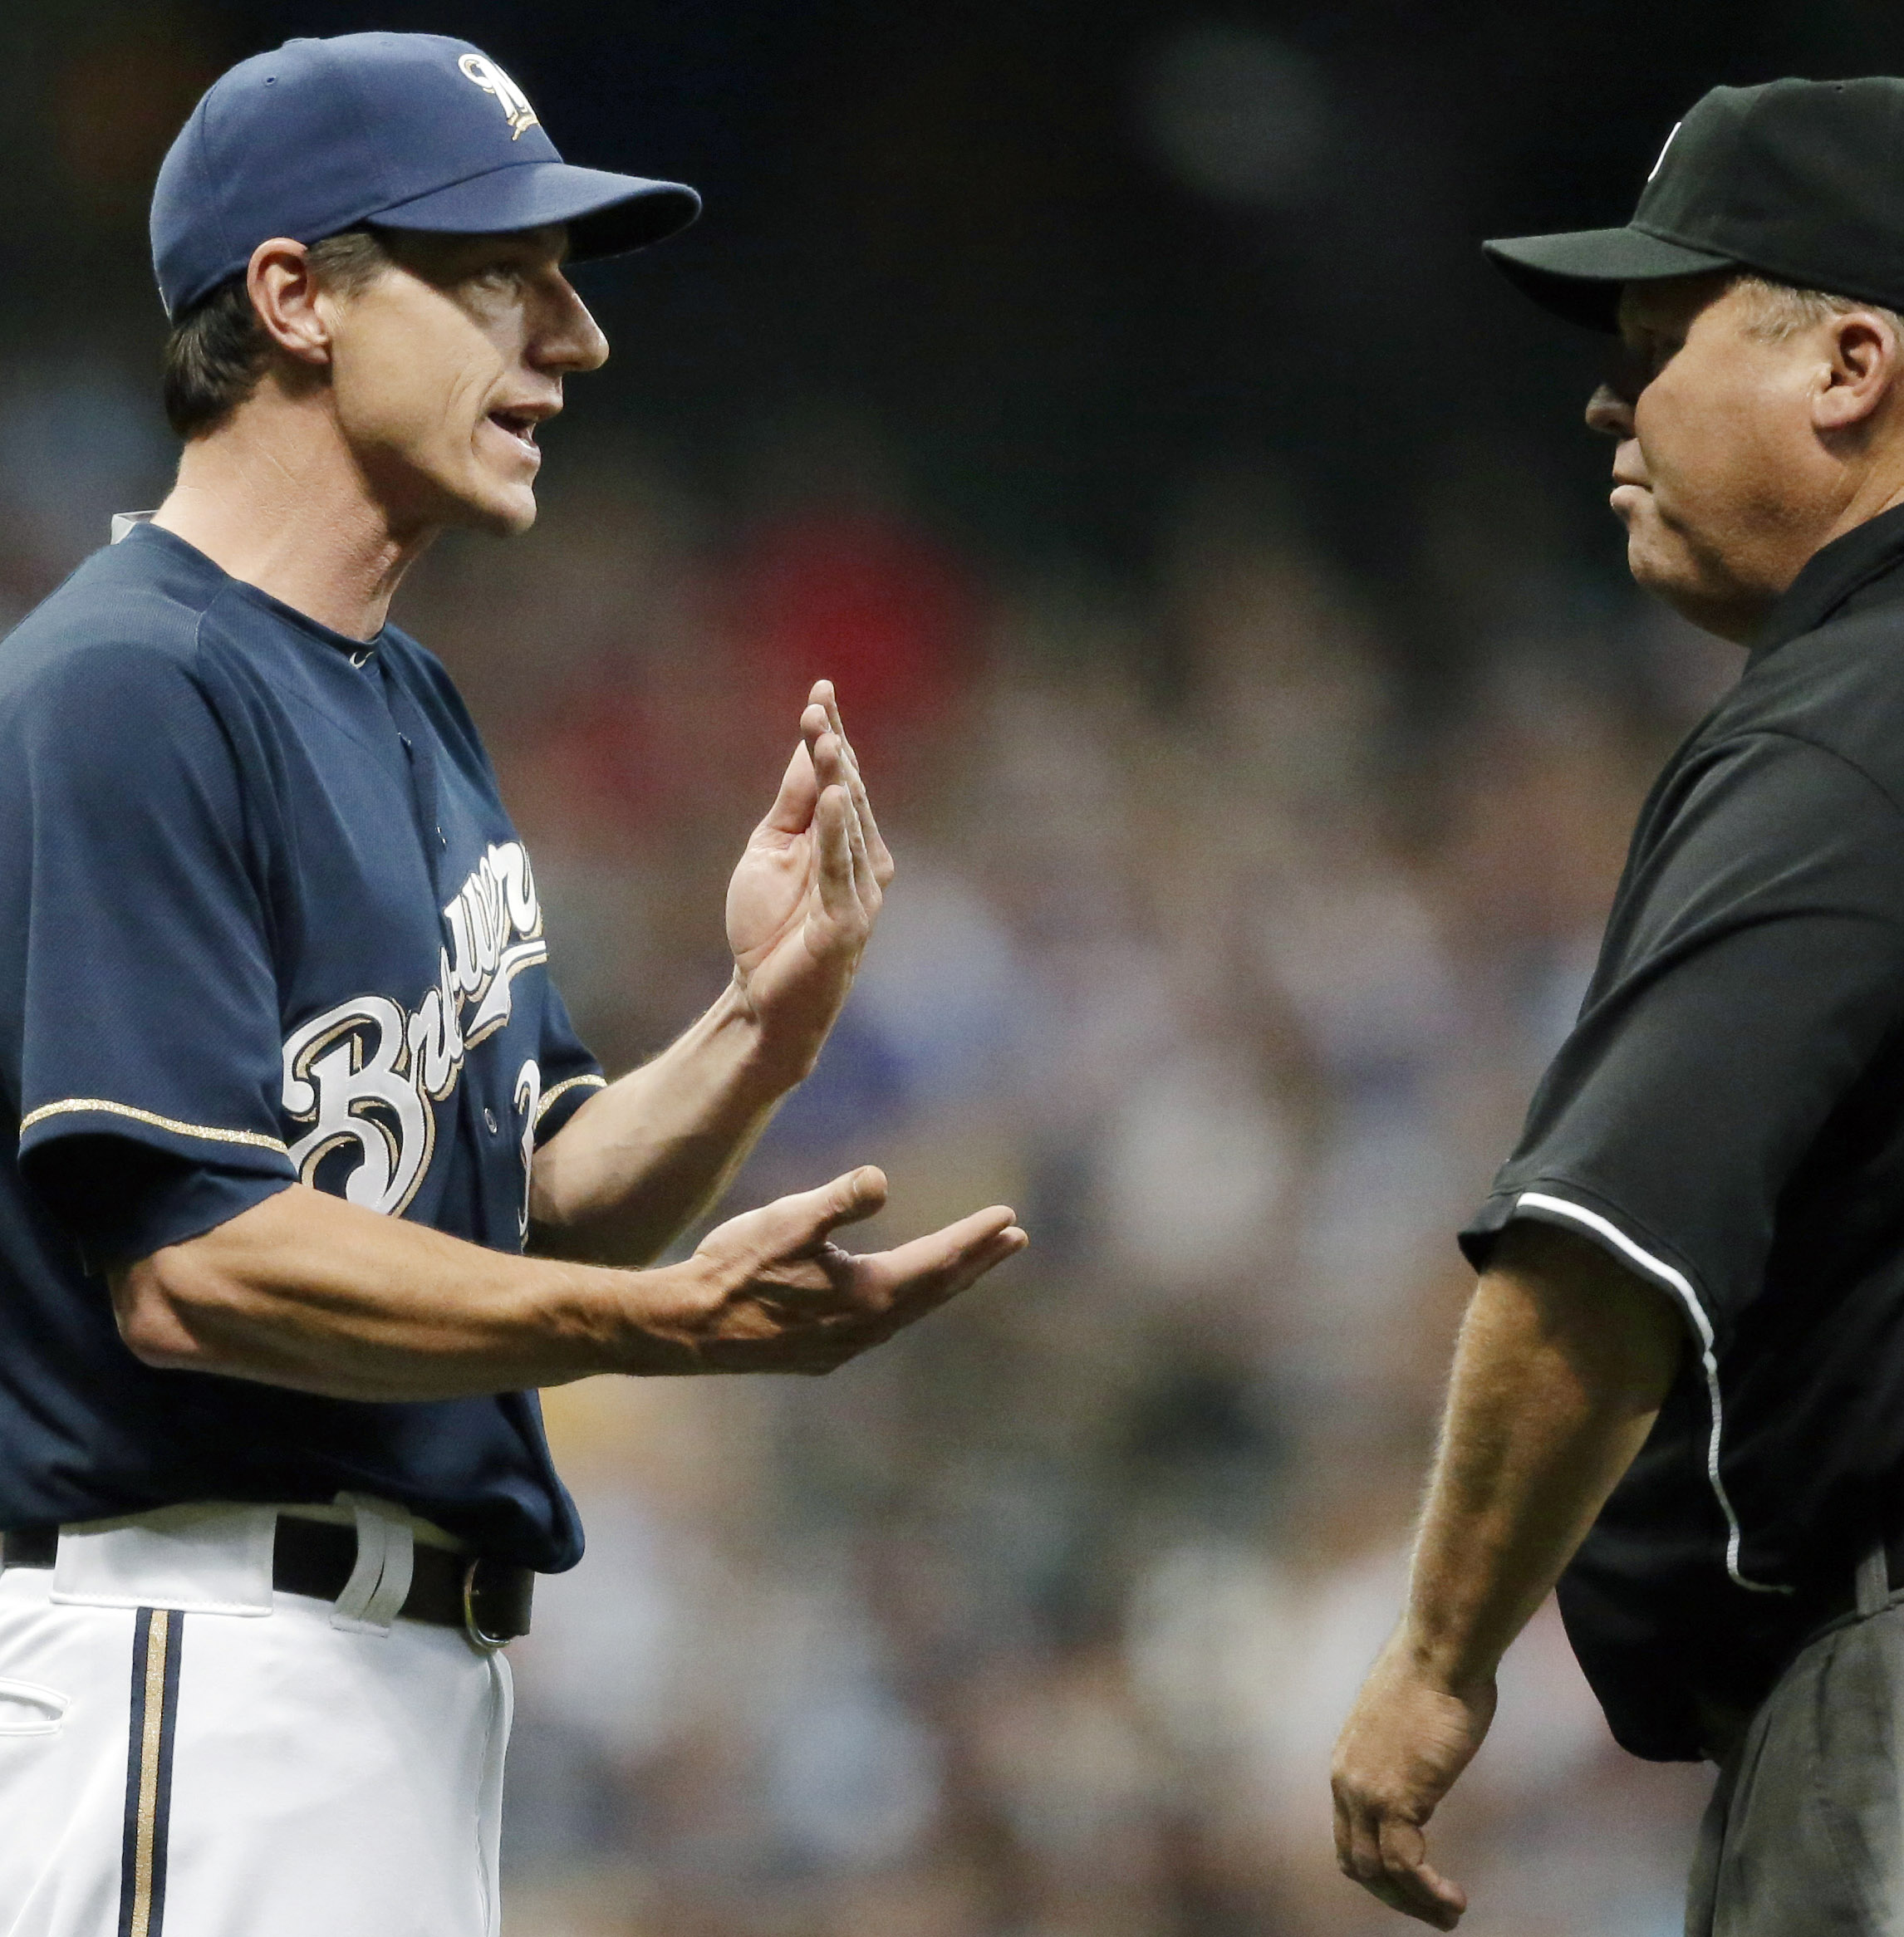 Milwaukee Brewers Manager Craig Counsell, left, argues a call with umpire Fieldin Culbreth during the seventh inning of a baseball game Saturday, Aug. 15, 2015, in Milwaukee. Counsell was tossed from the game. (AP Photo/Jeffrey Phelps)